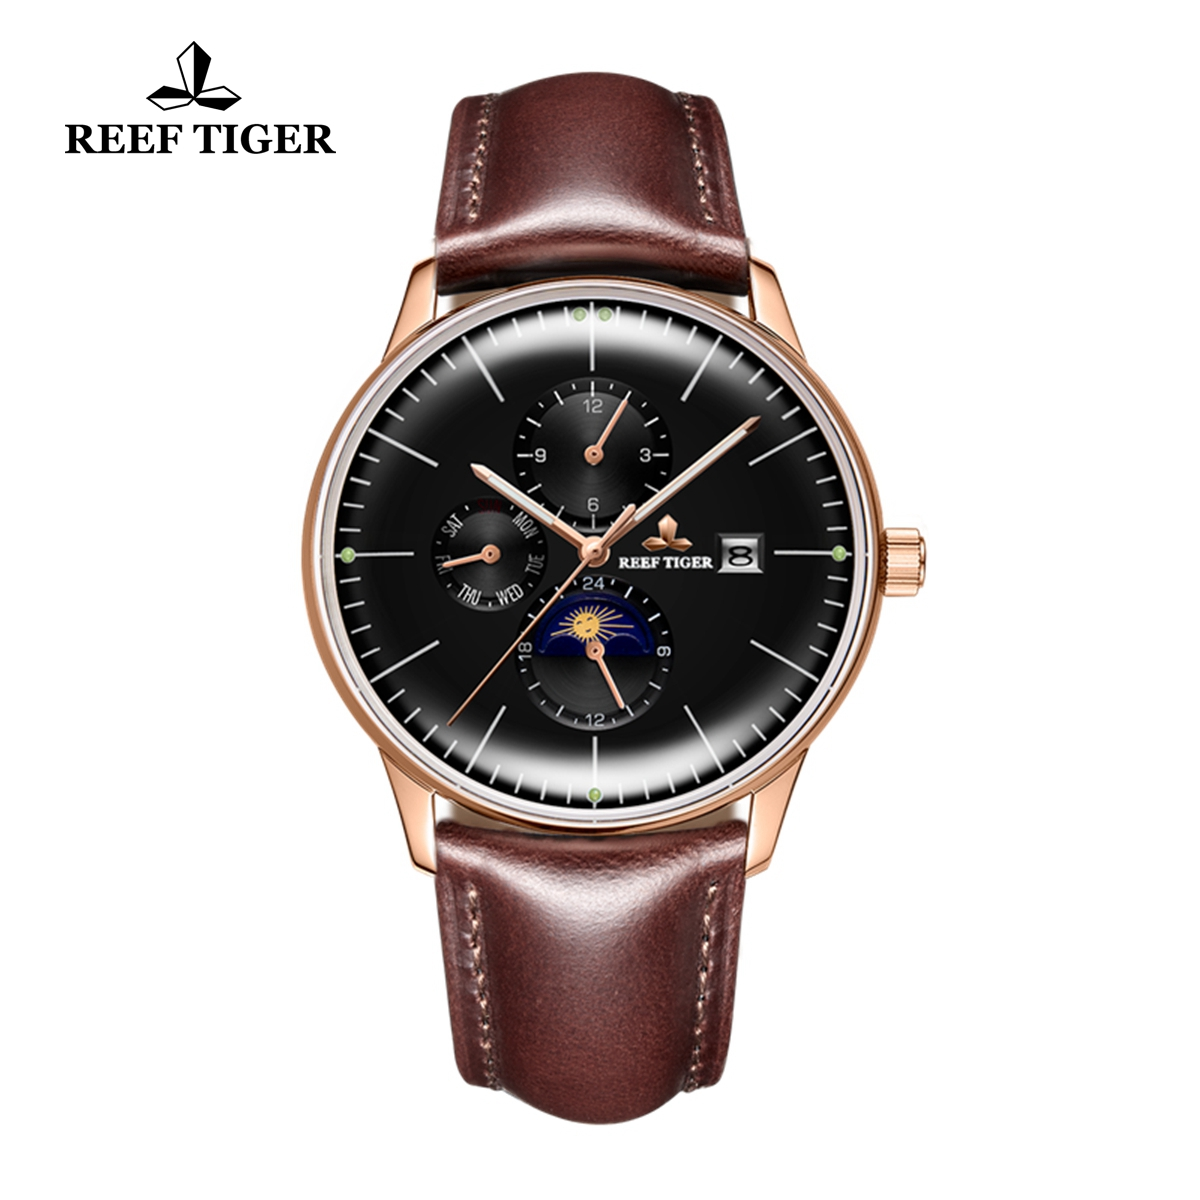 Reef Tiger Seattle Philosopher Luxury Black Dial Silky Leather Strap Automatic Watches with Date Day RGA1653-PBSH